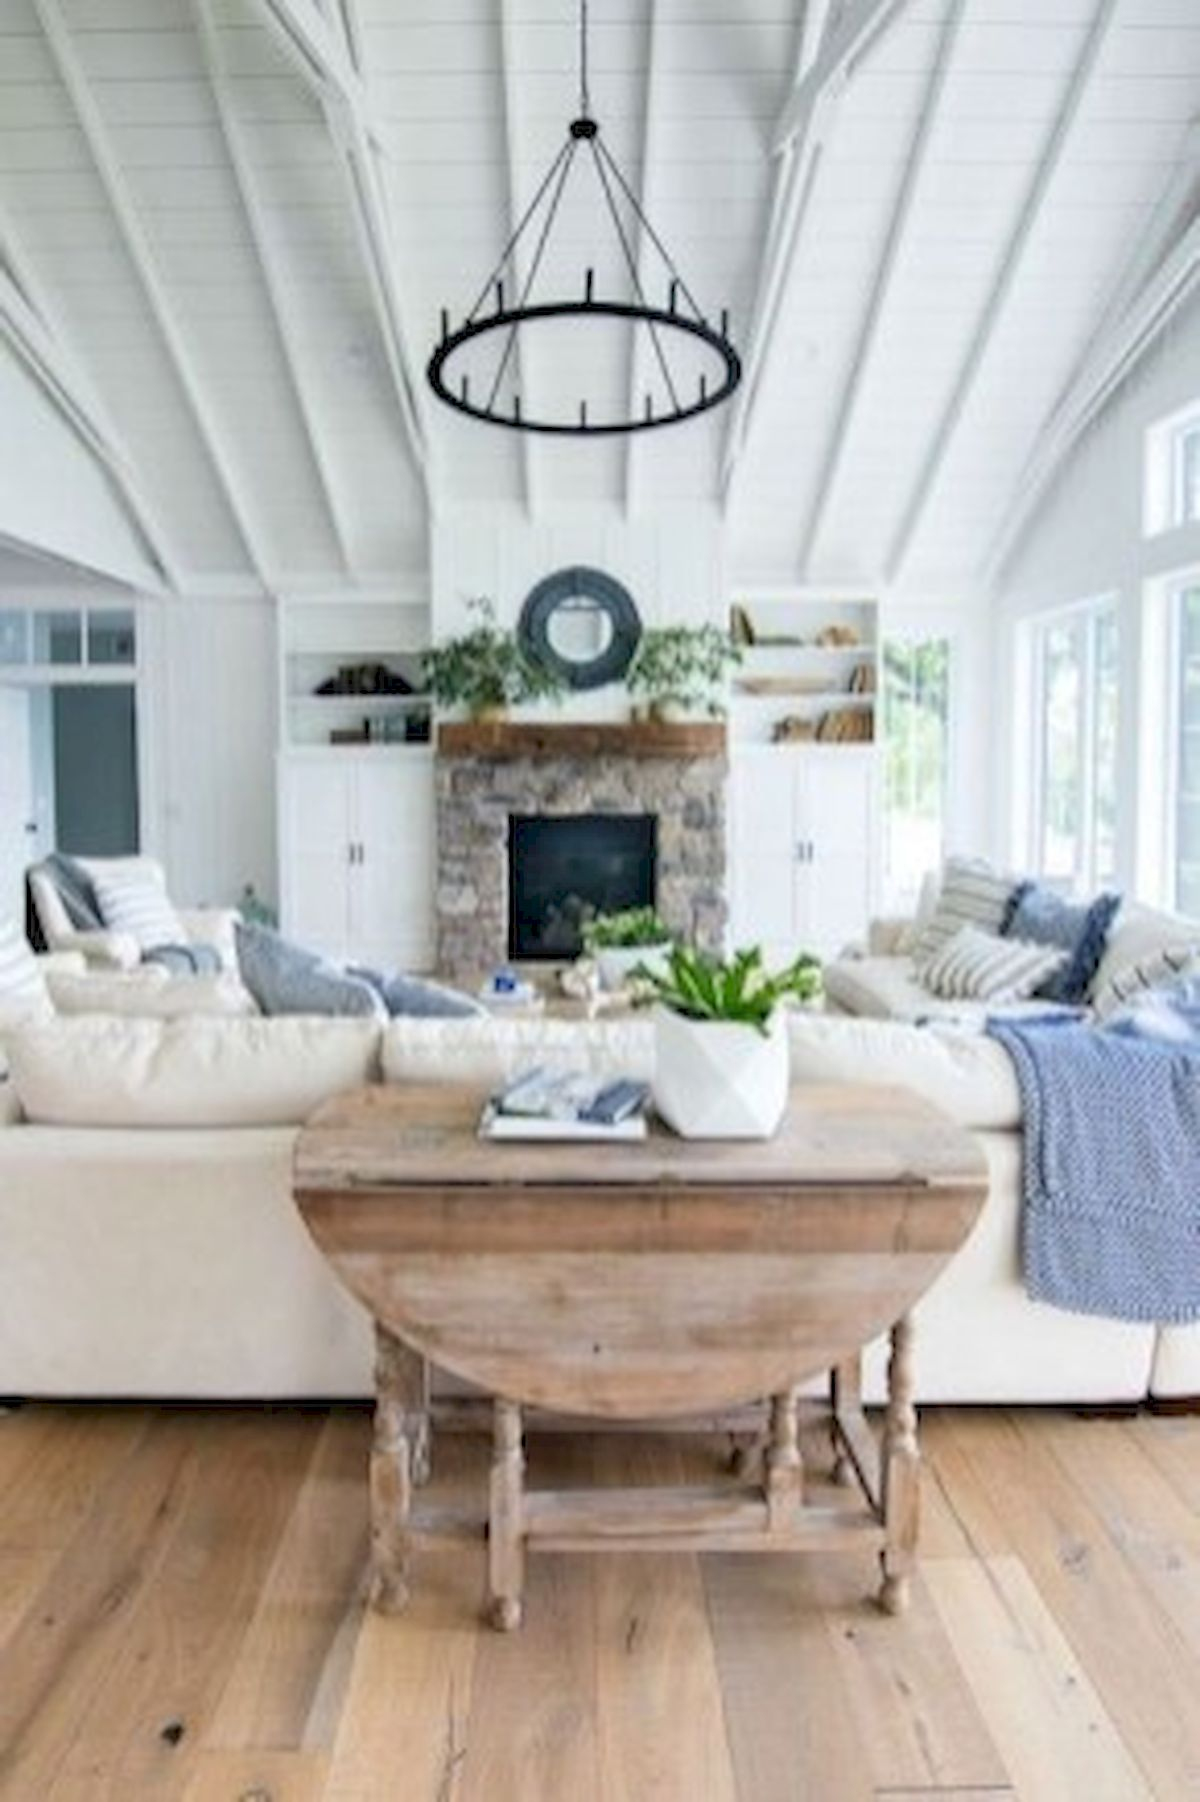 40+ Awesome Farmhouse Design Ideas For Living Room (14)